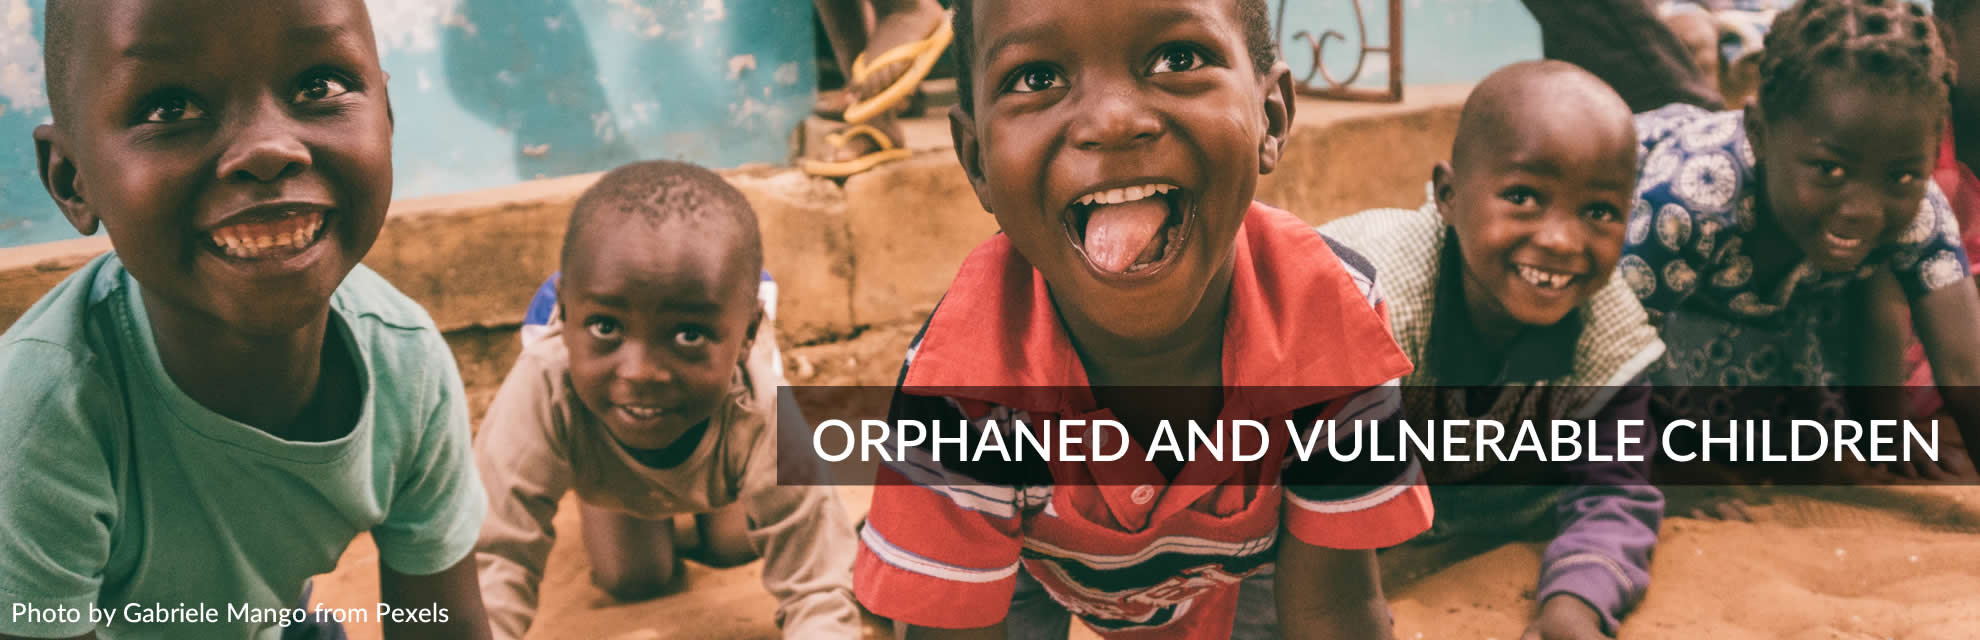 orphaned and vulnerable children